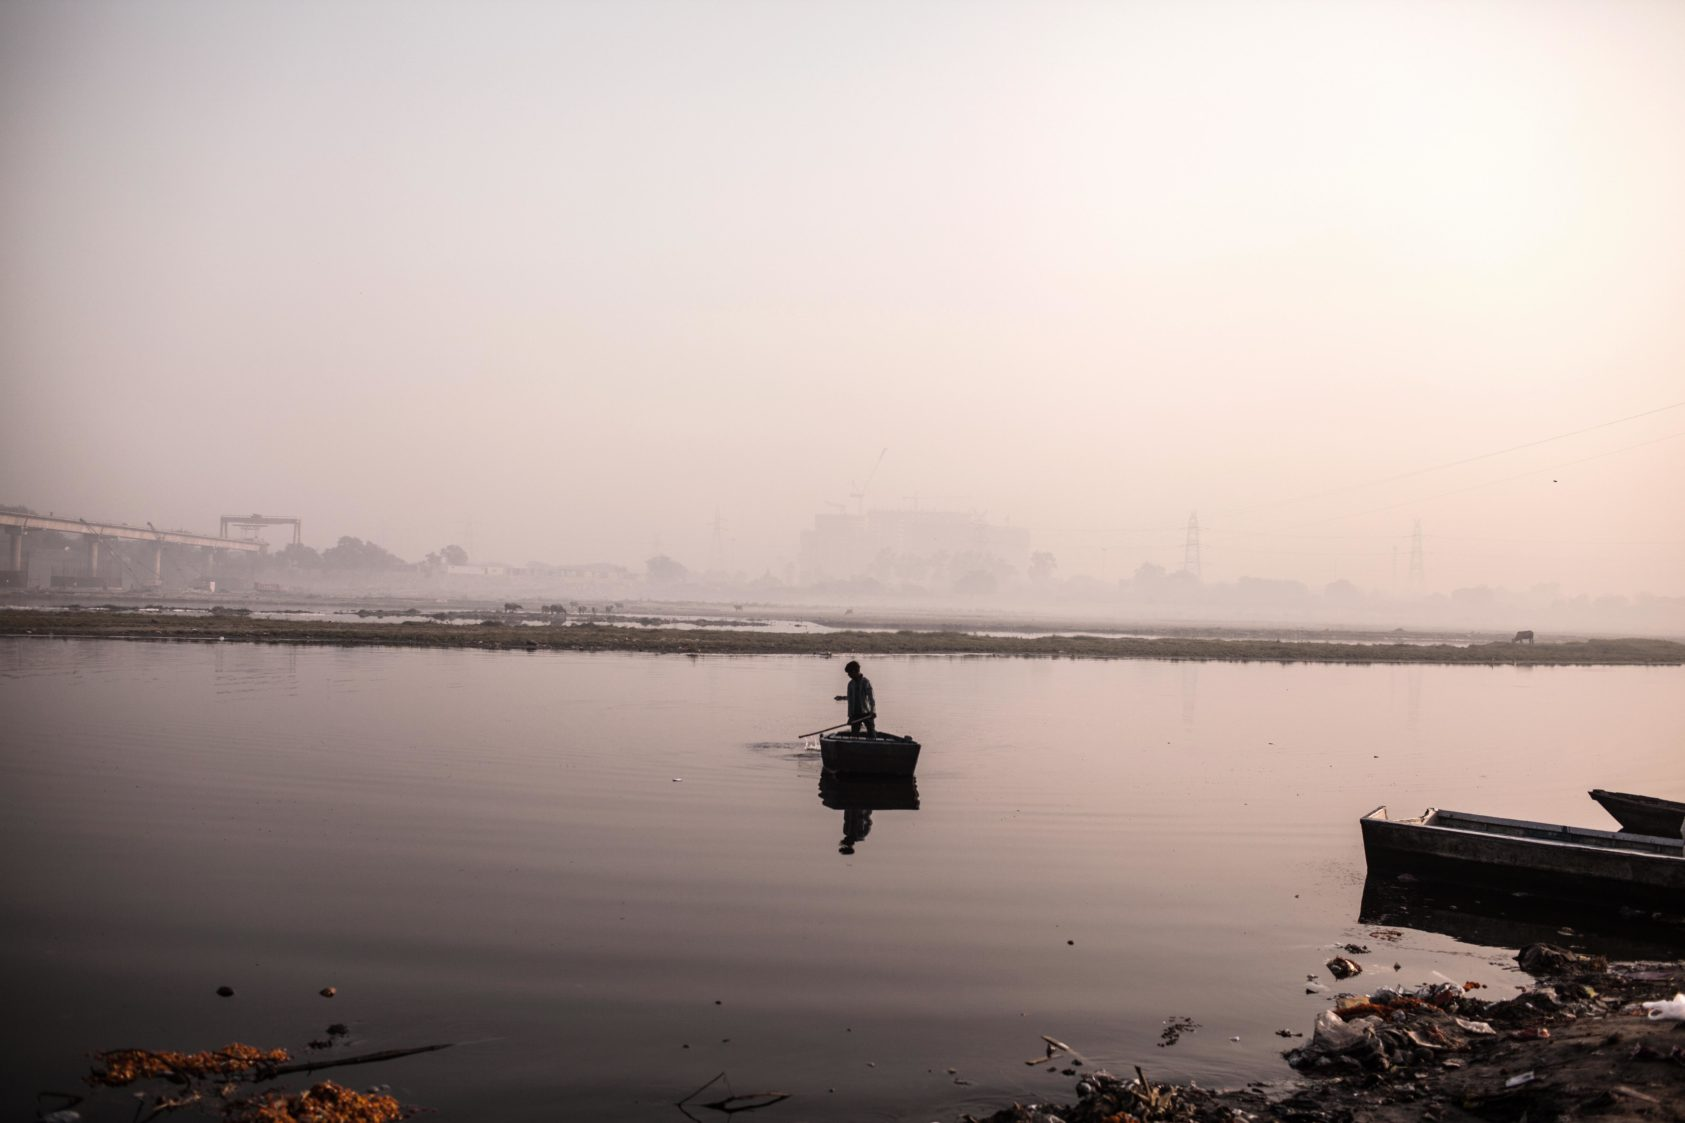 In search of dead bodies, number of people commit suicide by jumping into Yamuna River